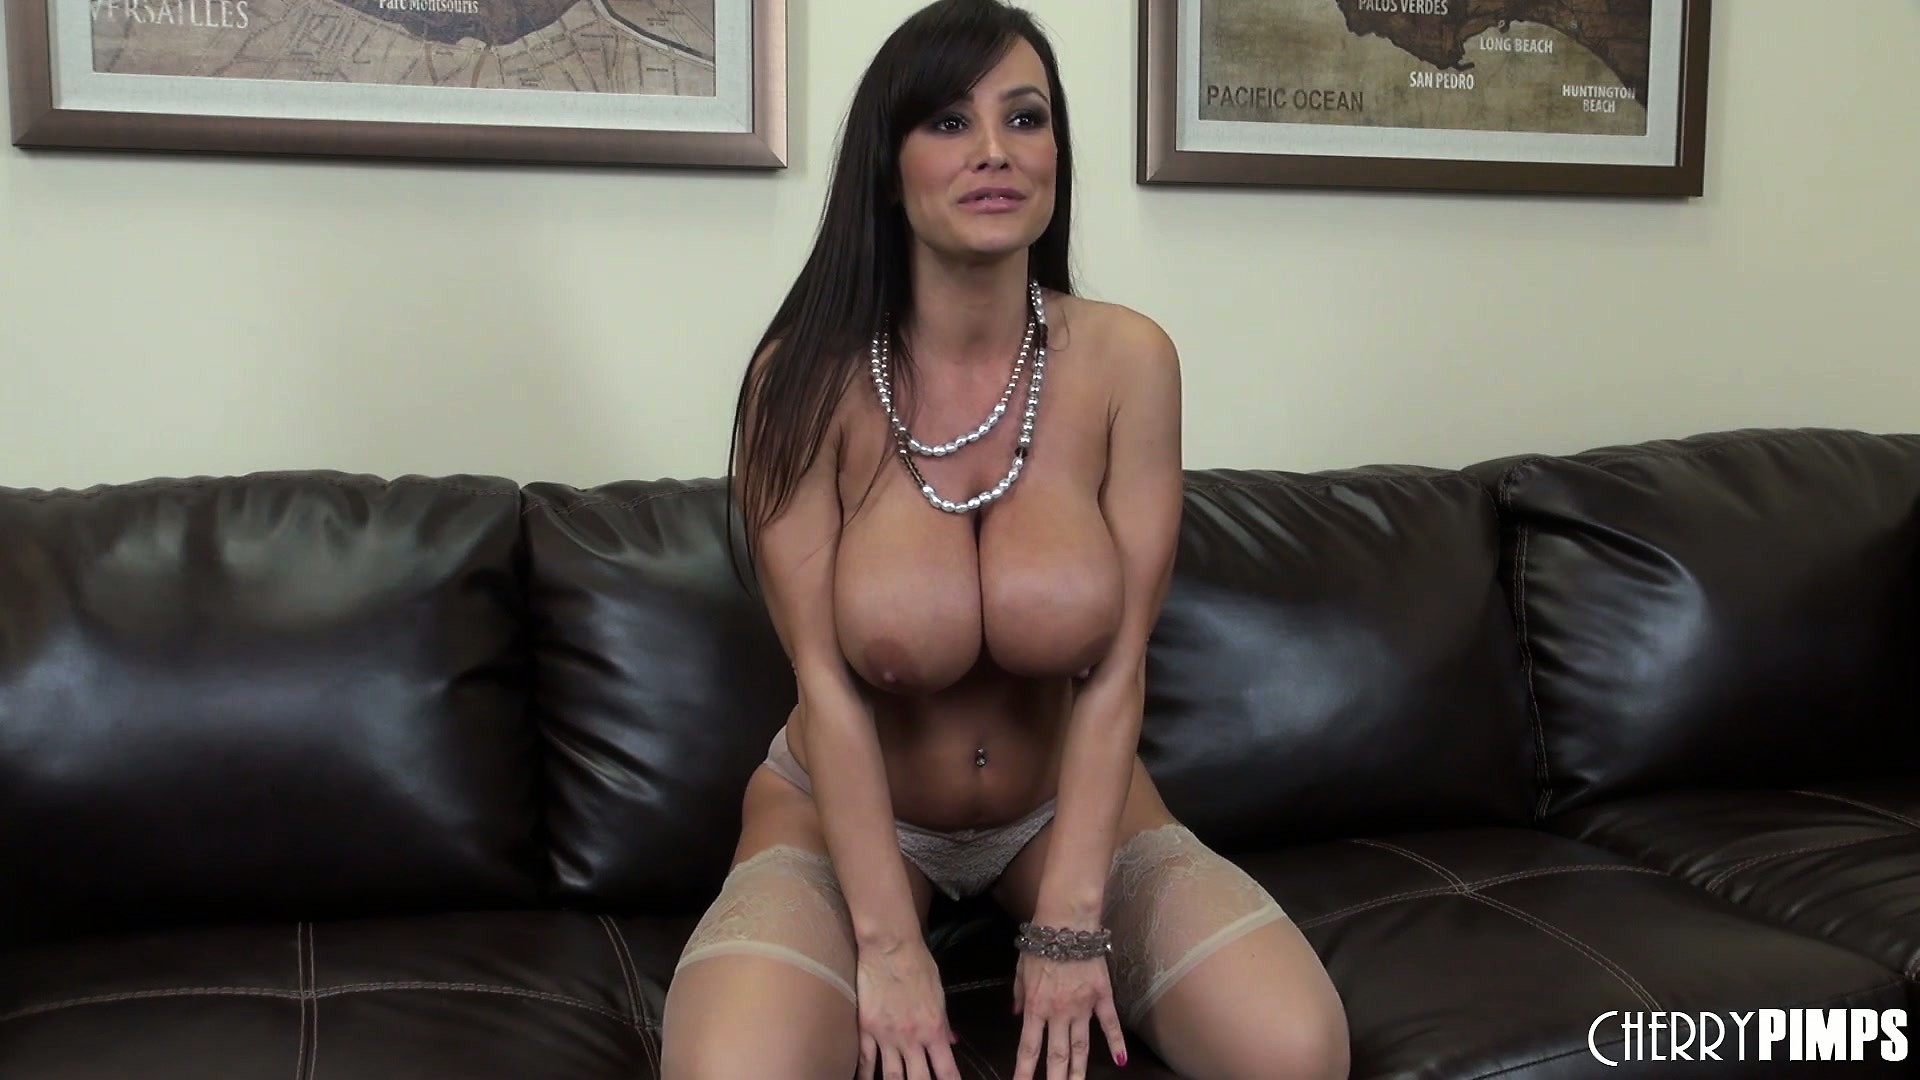 Sex Movie of The Sexy Cougar Seductively Takes Her Bra Off Revealing Her Huge Boobs